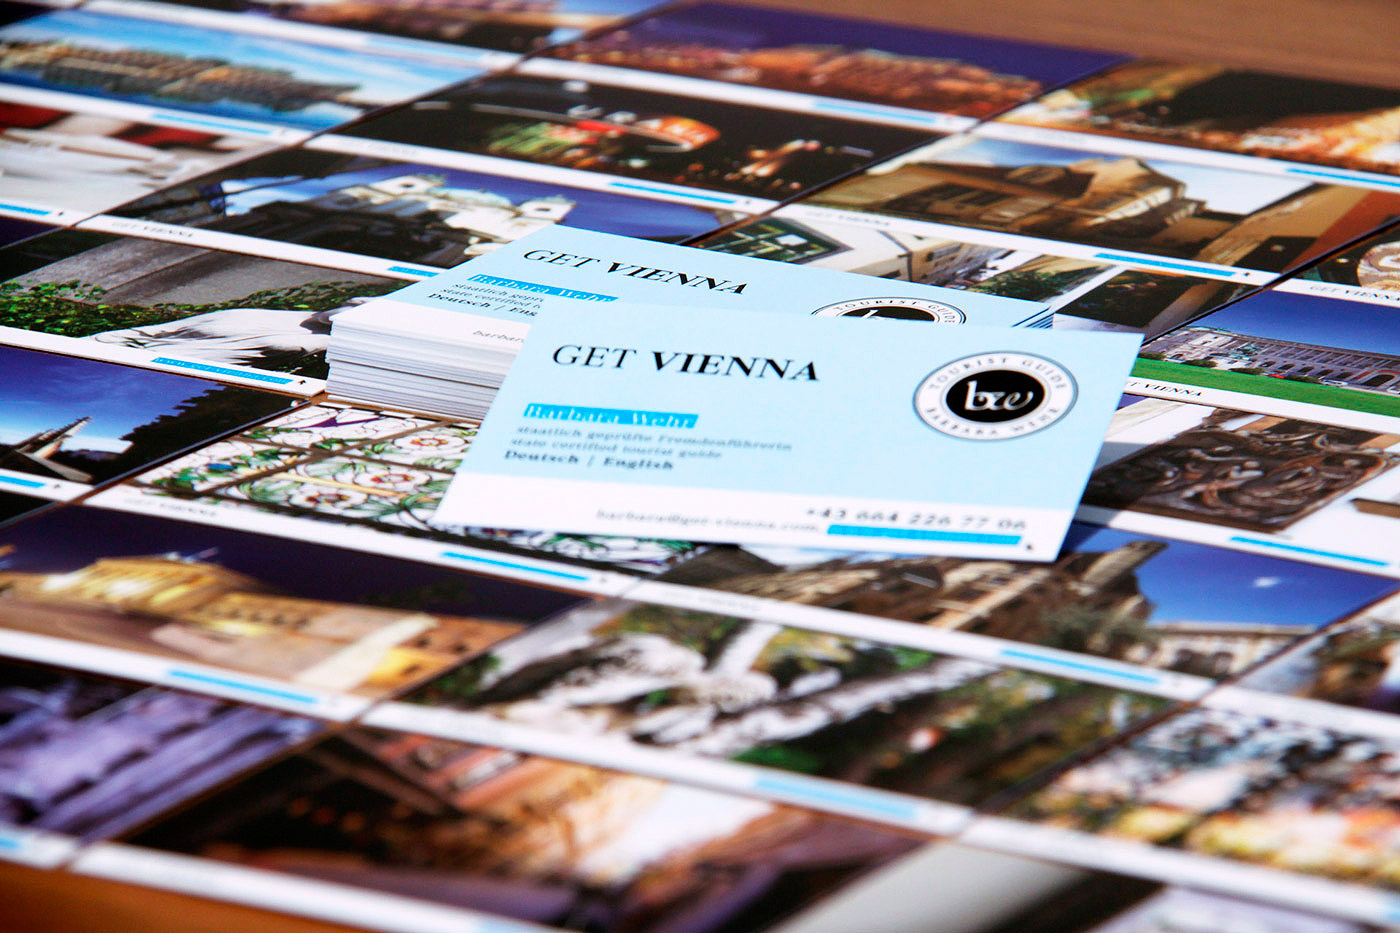 getVienna-businesscards2